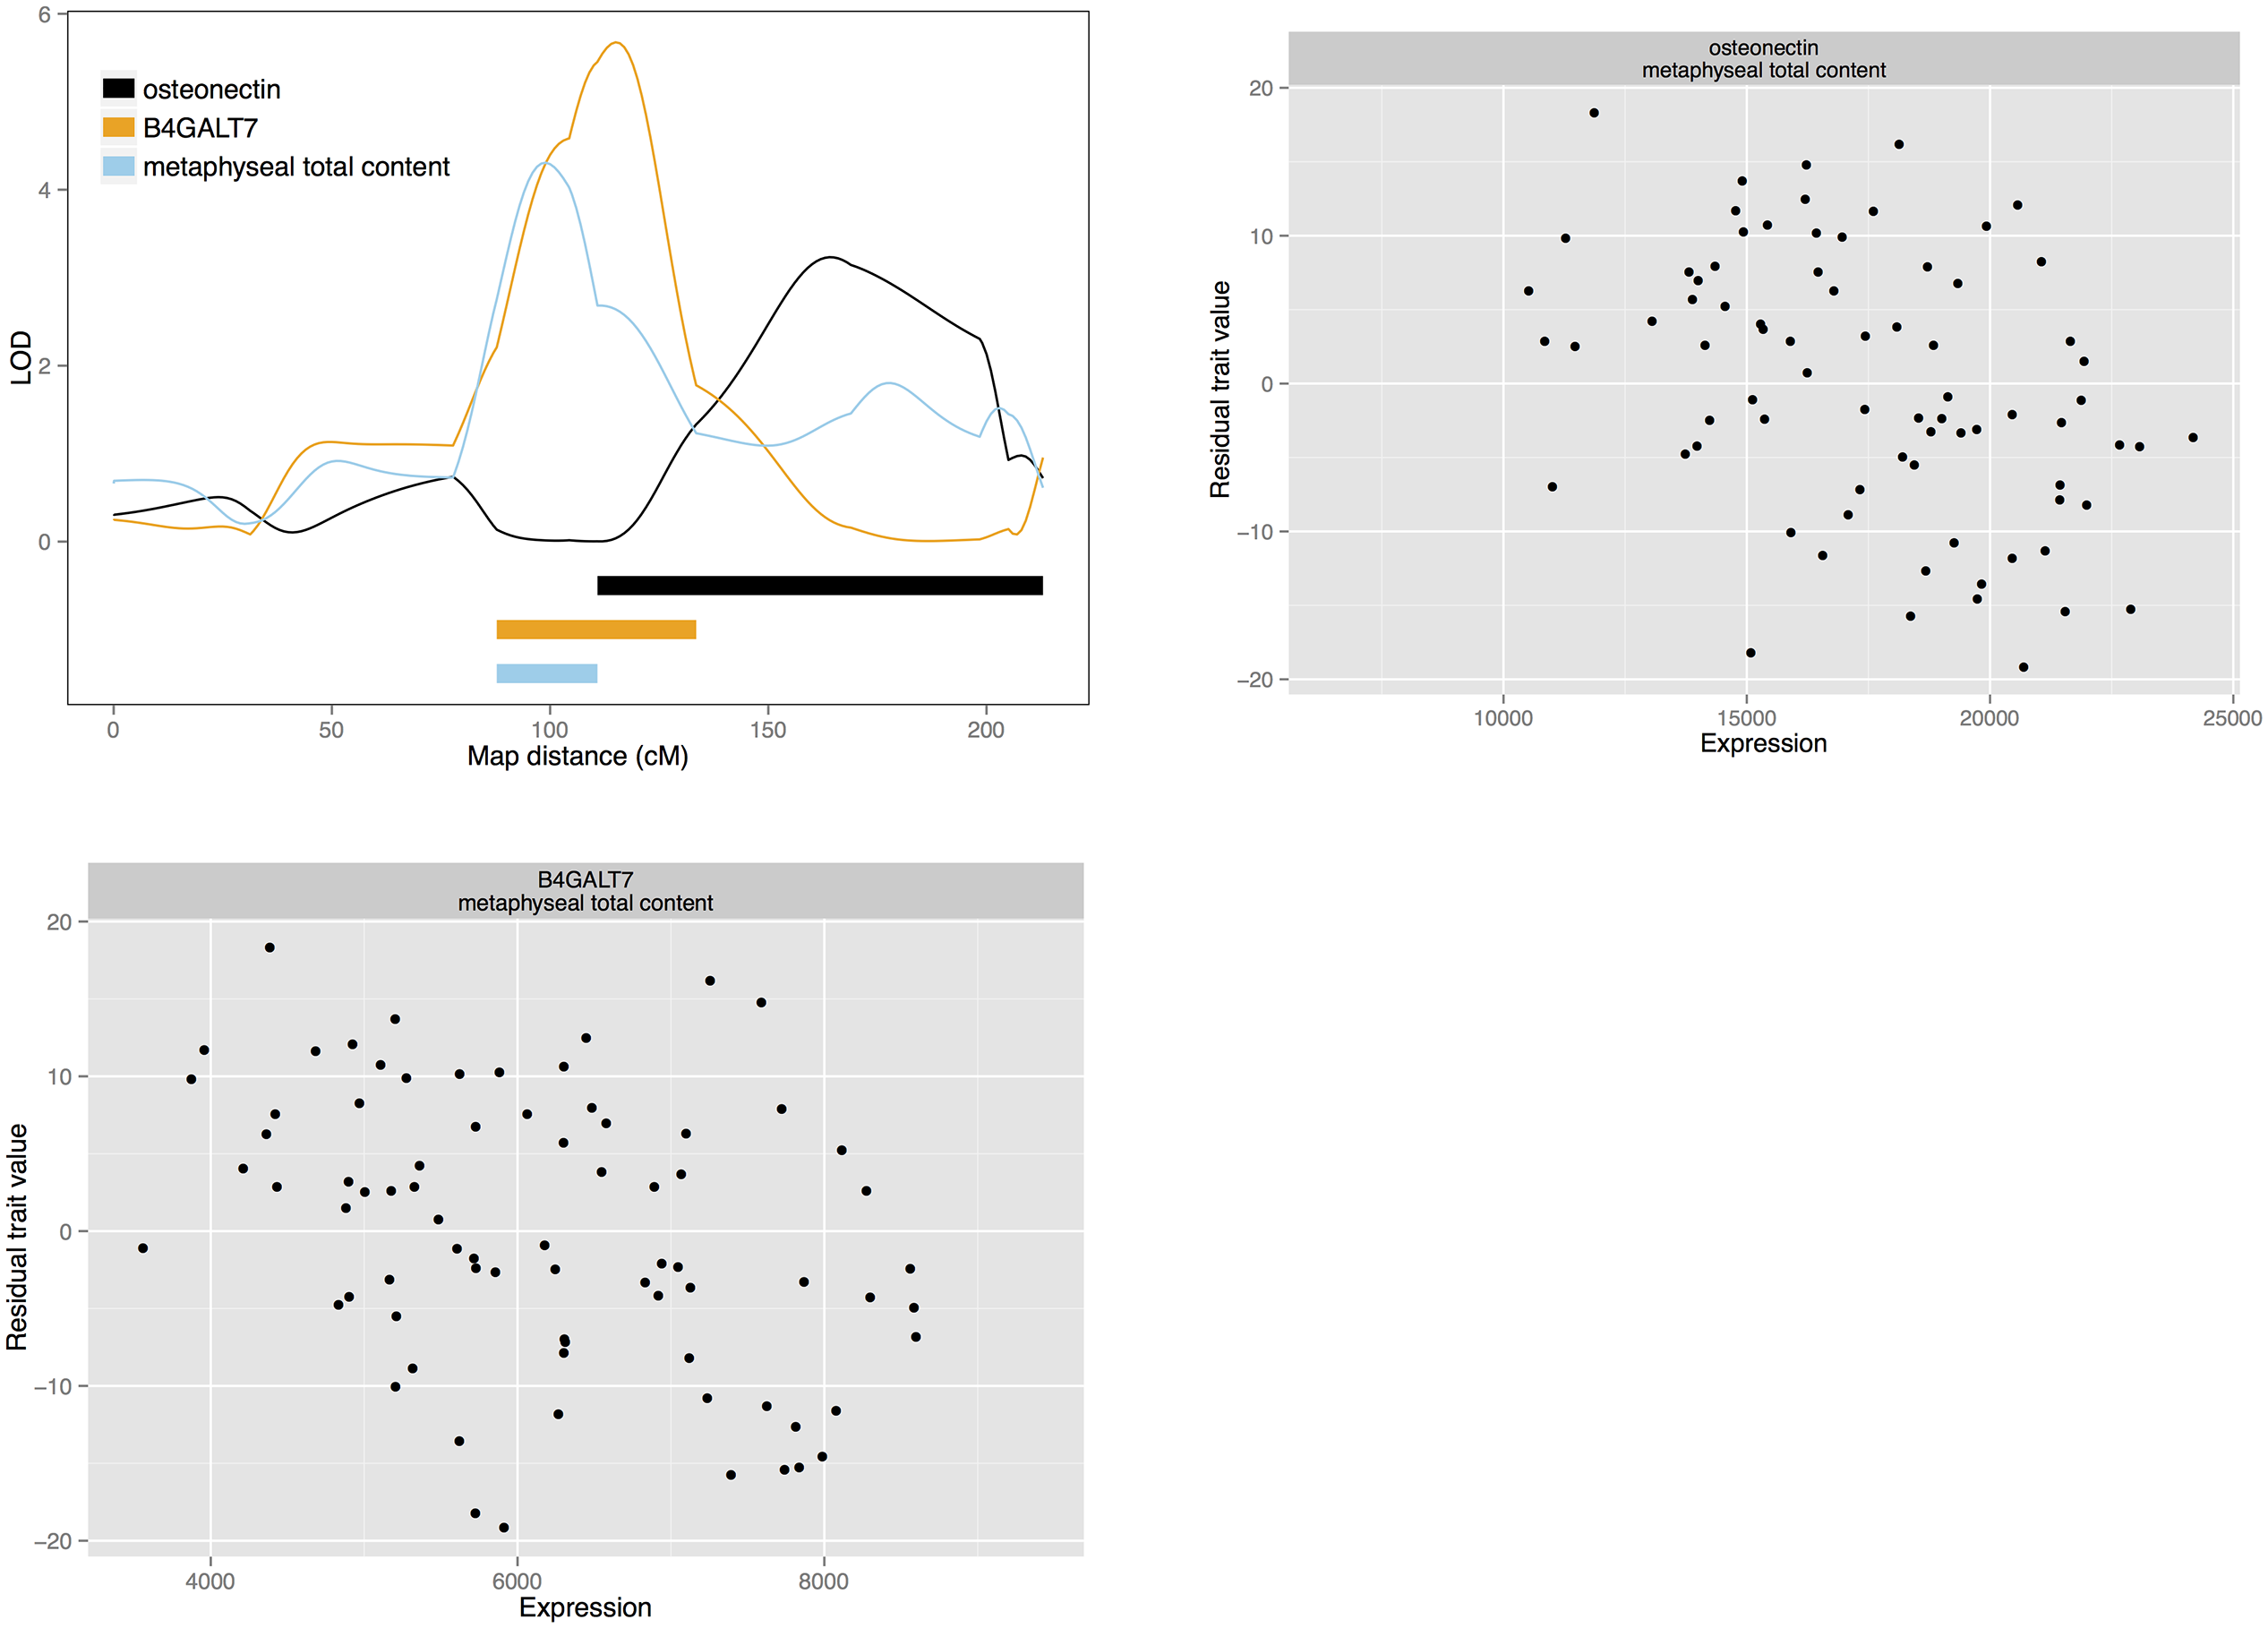 Candidate quantitative trait genes osteonectin and <i>B4GALT7</i> for total bone content: LOD curves and confidence intervals of bone QTL and associated eQTL, and scatterplots of residual phenotypes against gene expression values.